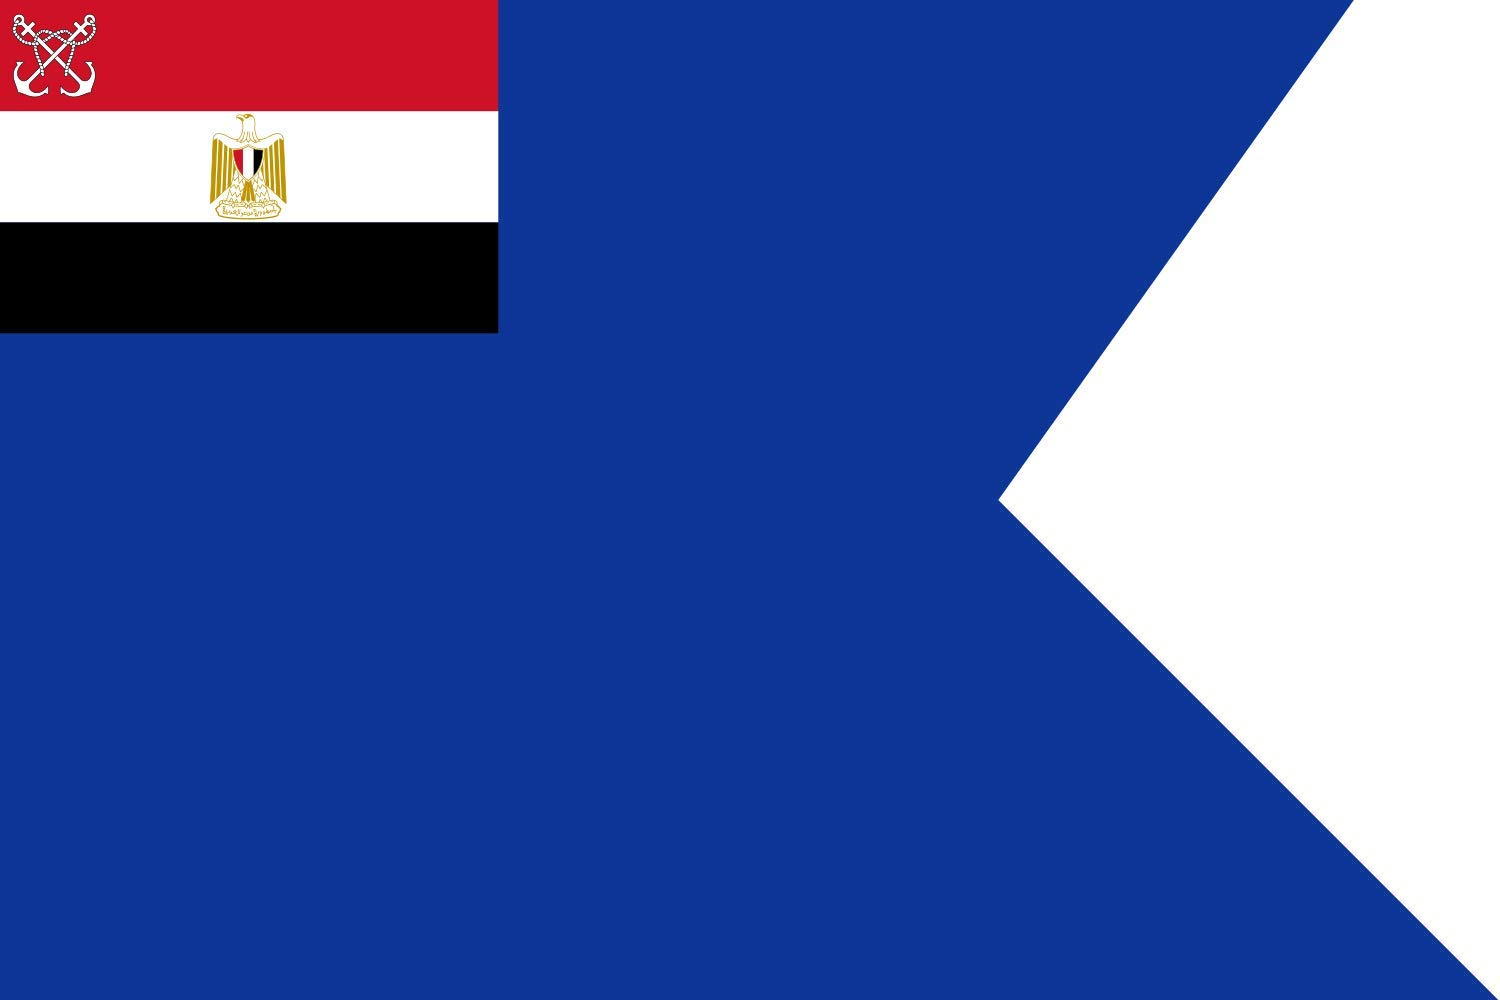 magFlags Large Flag Rear Admiral, Rank Flag, Navy of Egypt | Landscape Flag | 1.35m² | 14.5sqft | 90x150cm | 3x5ft - 100% Made in Germany - Long Lasting Outdoor Flag